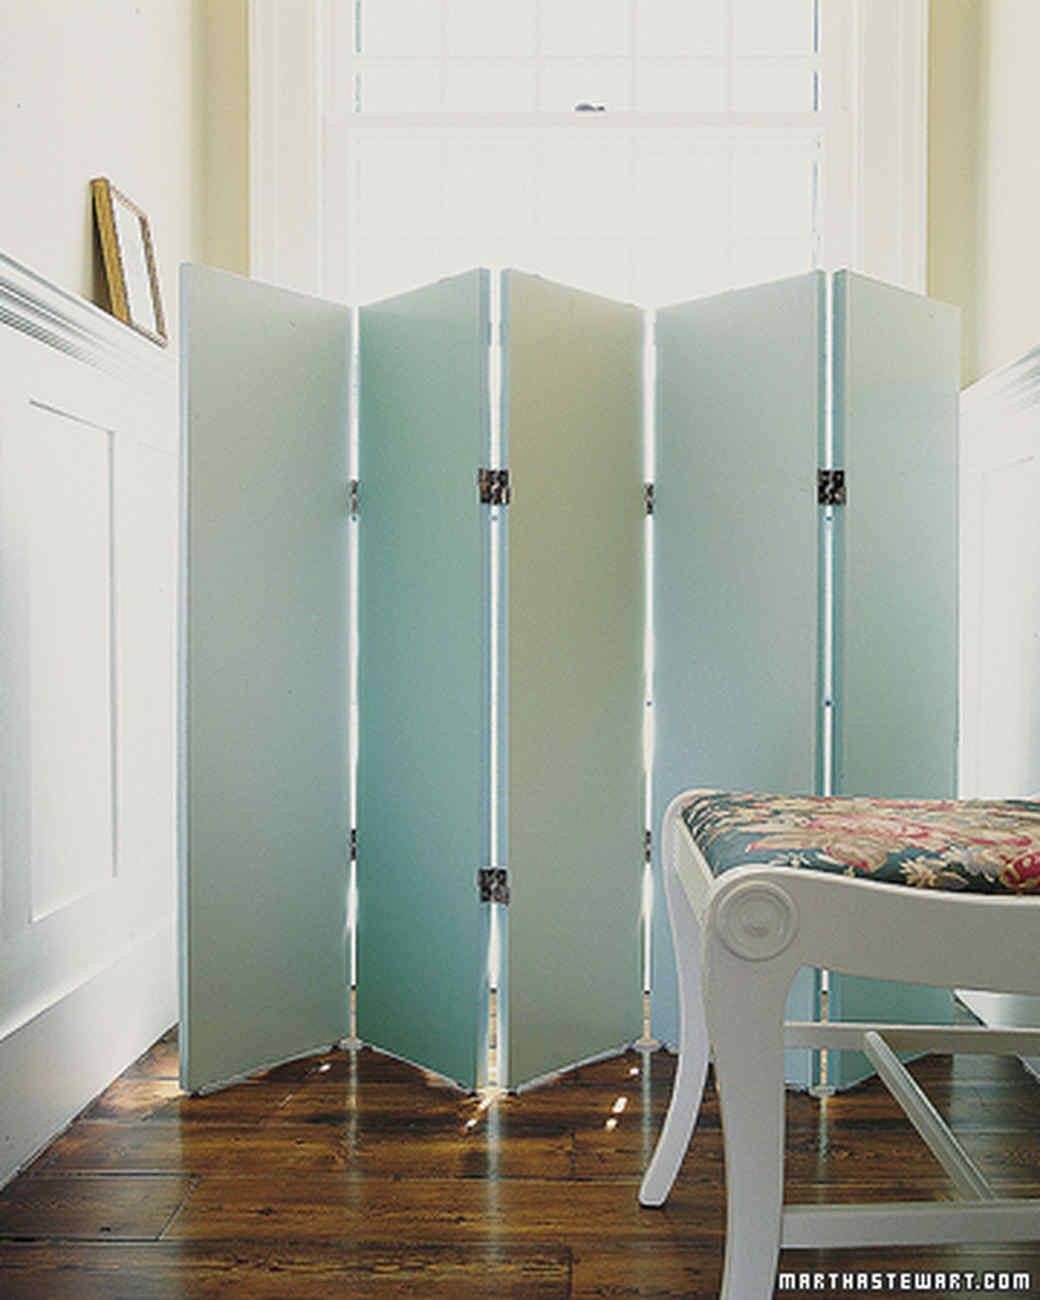 Best ideas about DIY Room Partitions . Save or Pin 15 DIY Room Dividers To Style Organize and Conquer Your Space Now.